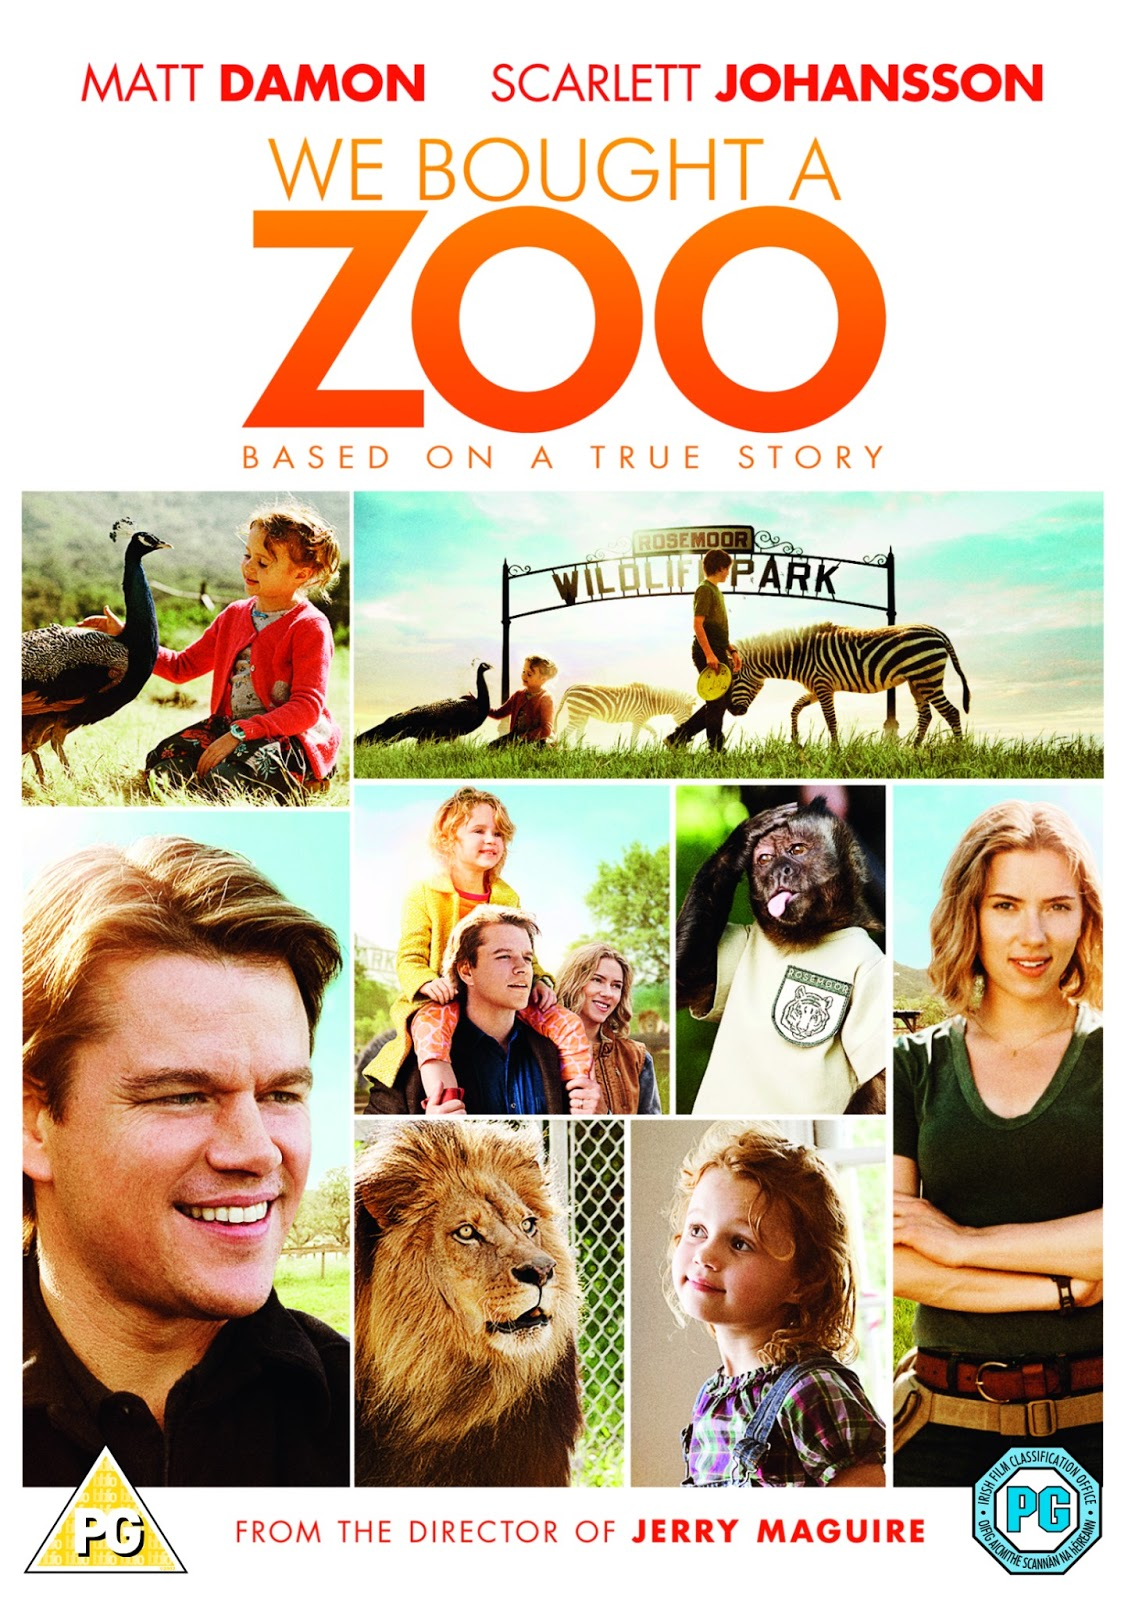 We bought a zoo essay